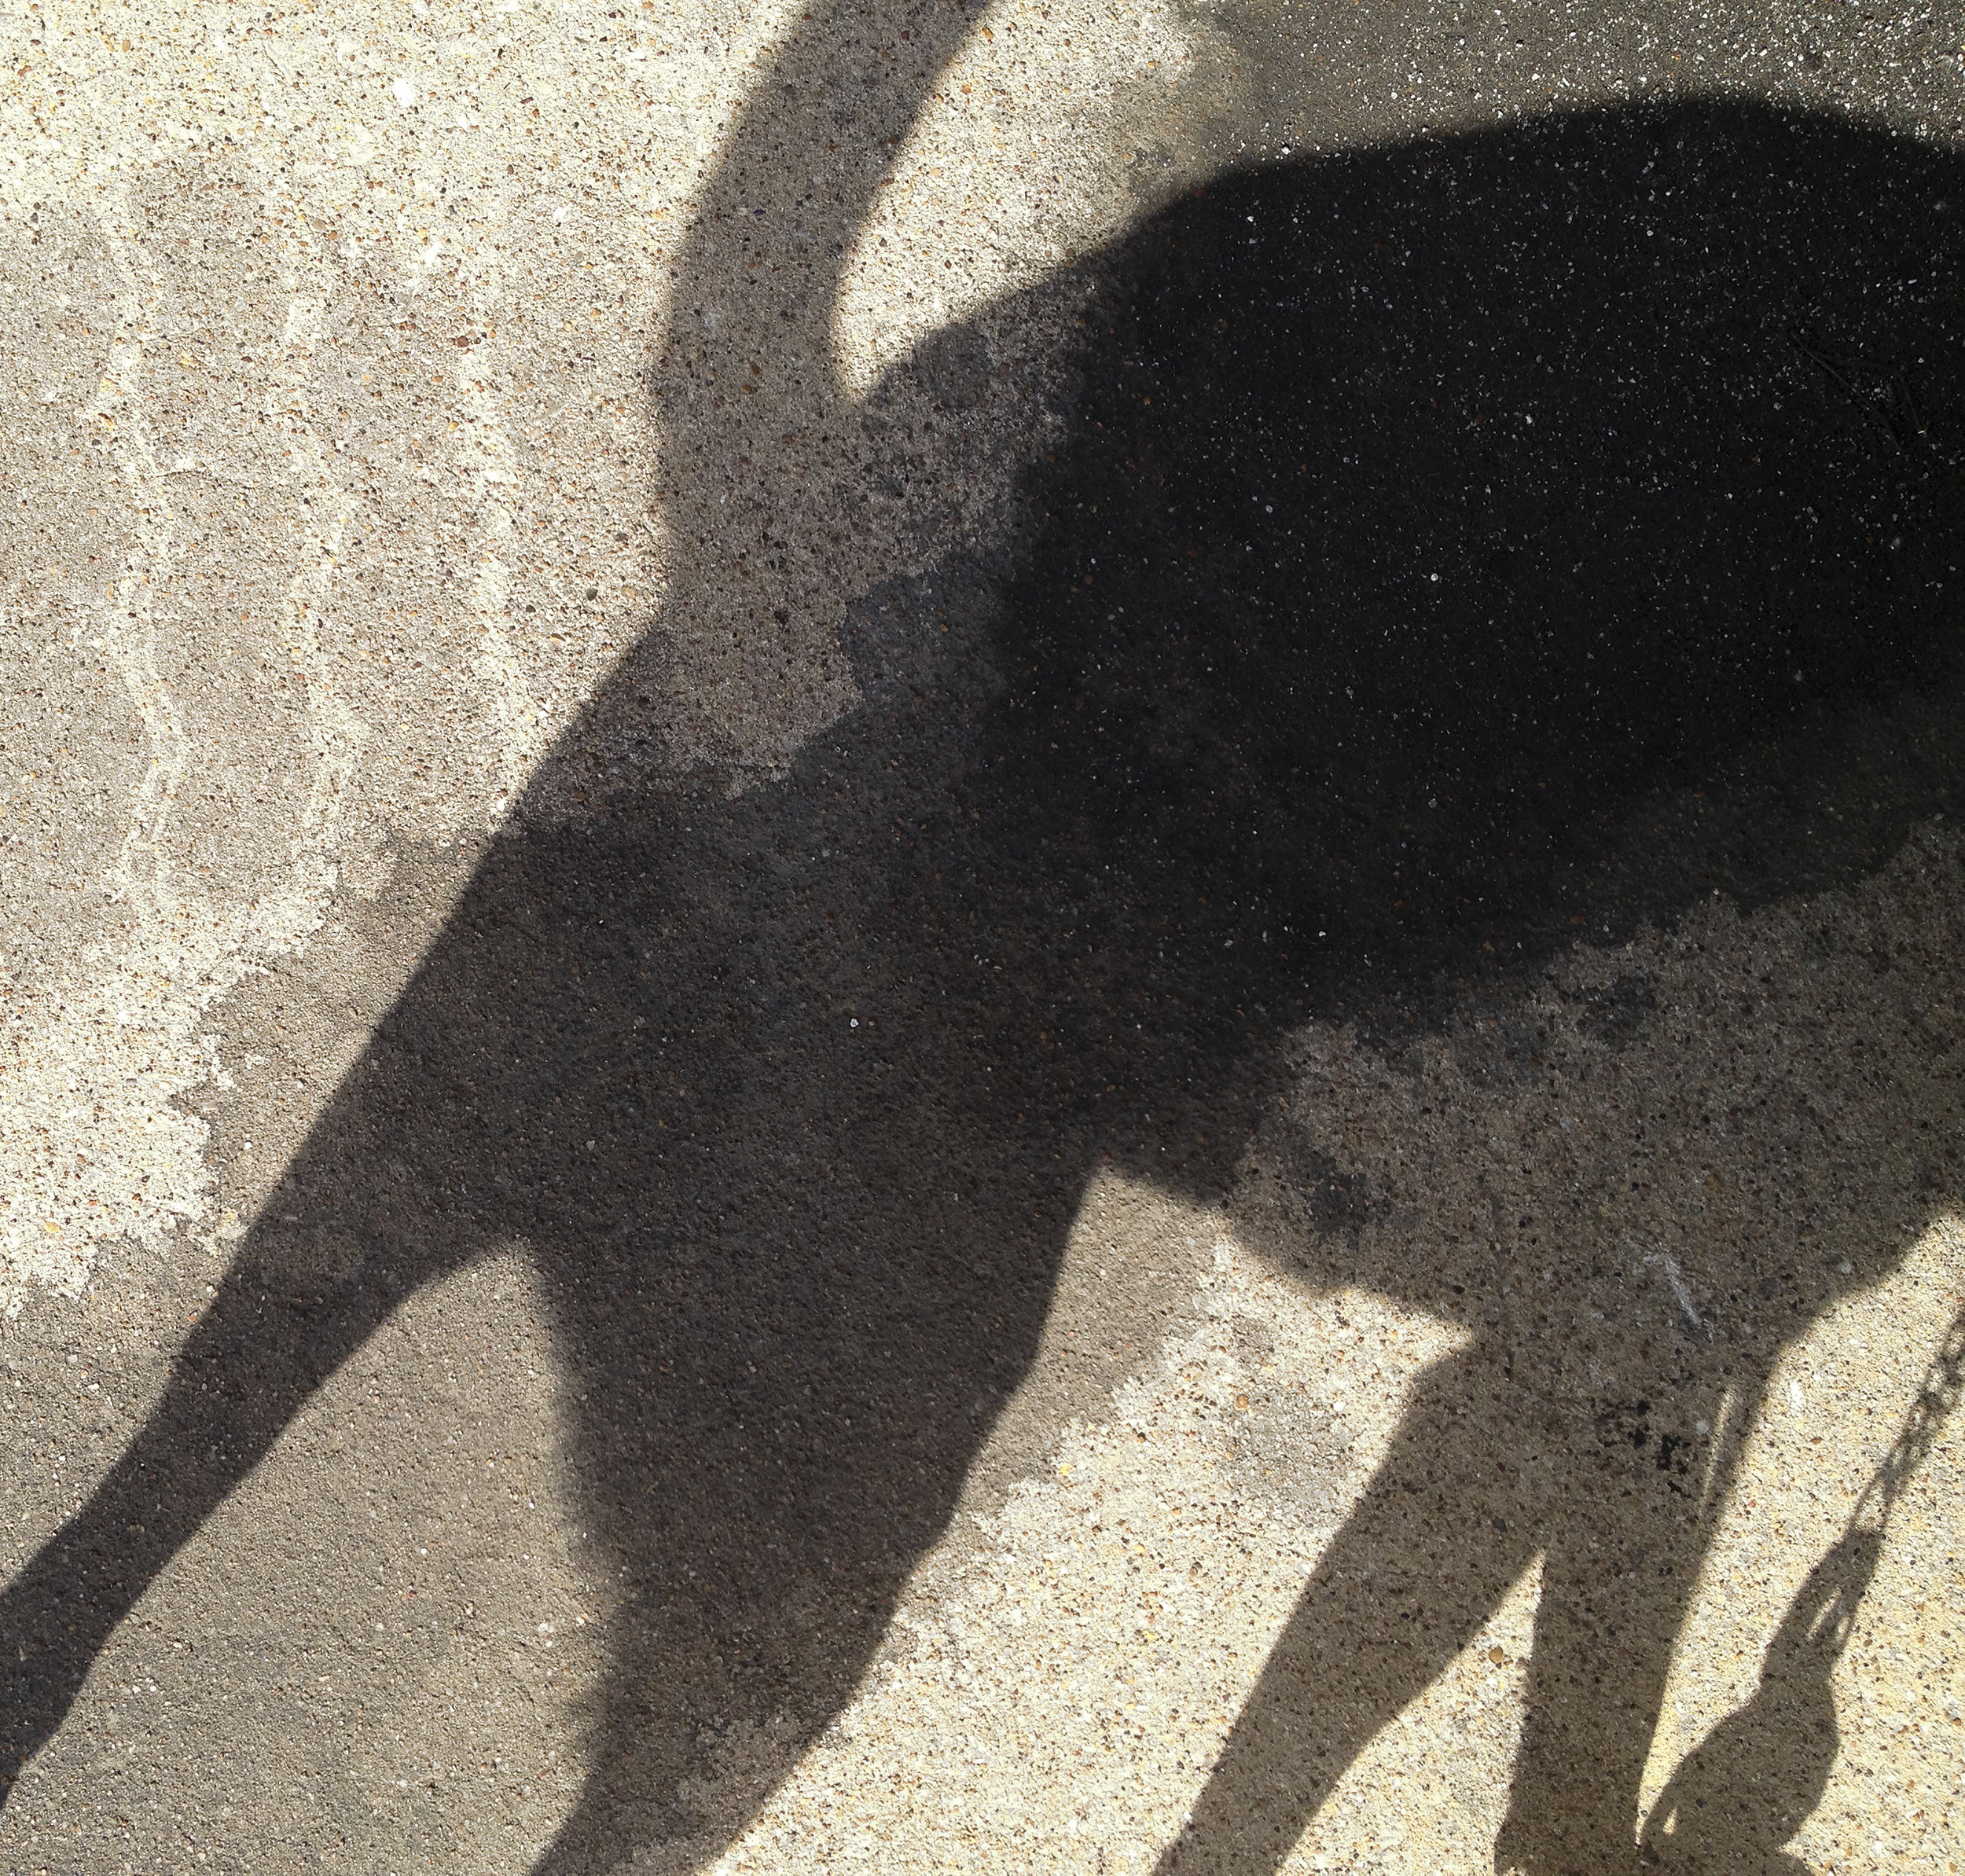 Jake_Shadow-2014-IMG_4599-cropped.jpg